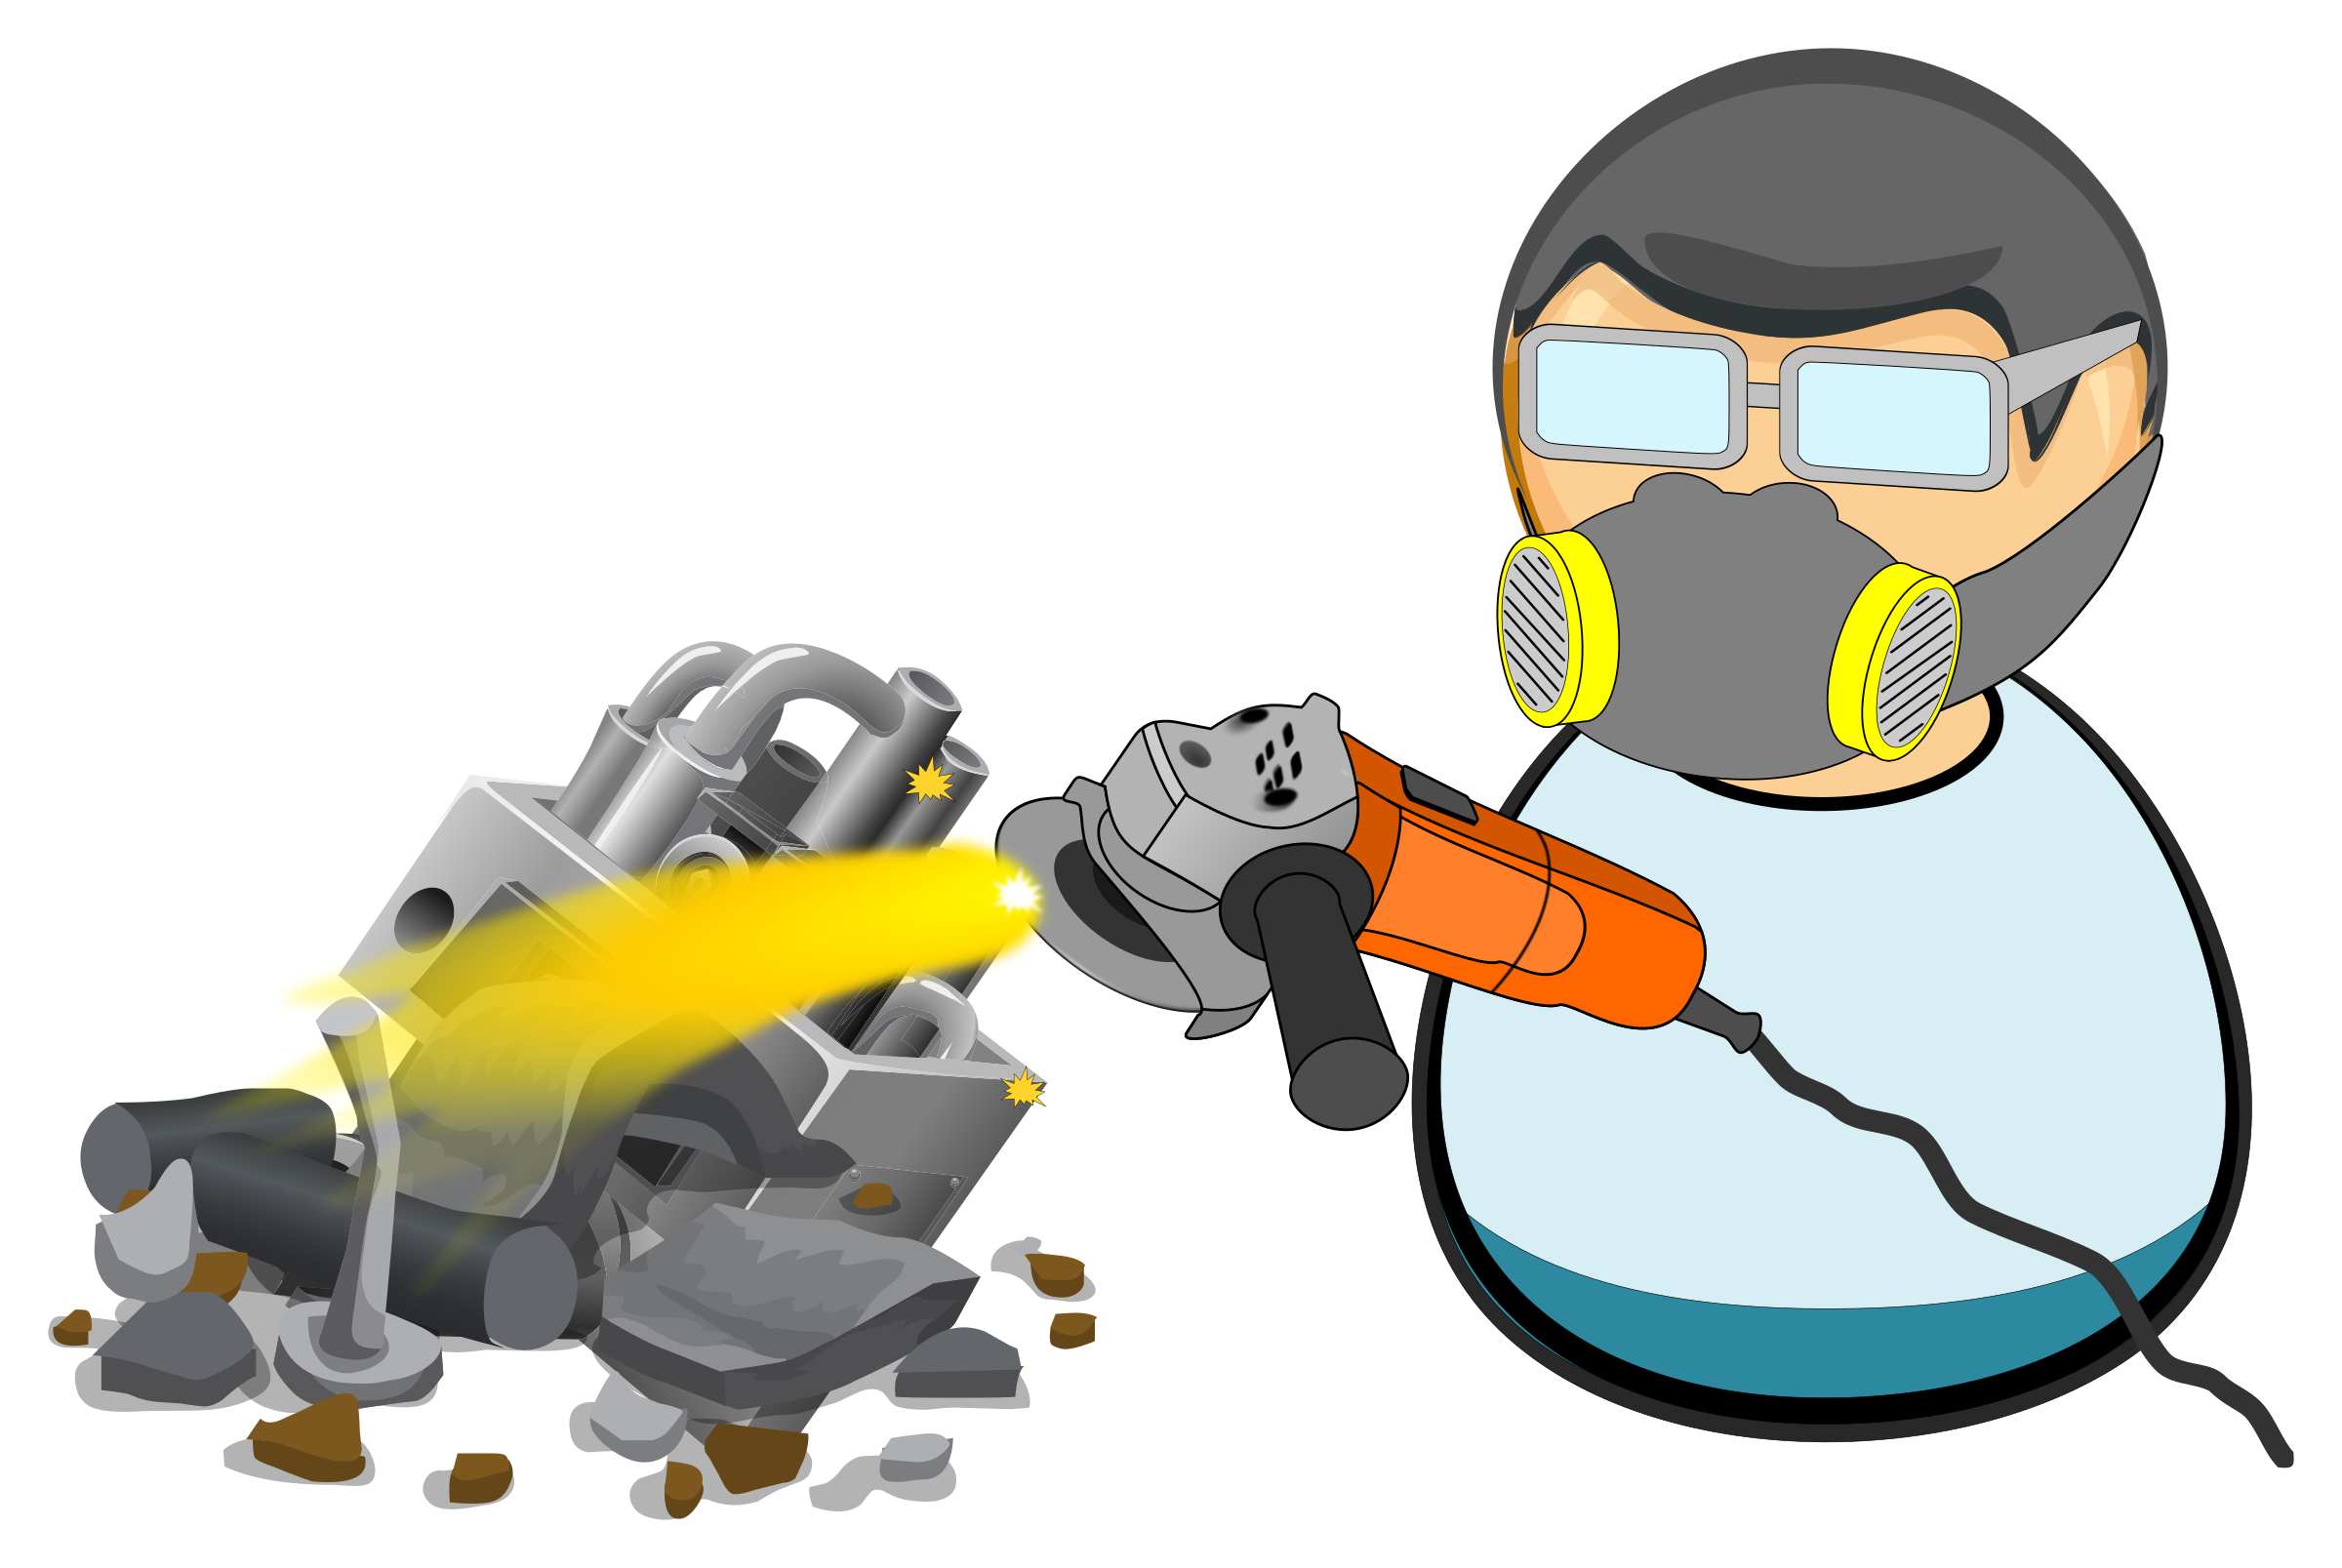 Scrapyard icons png free. Fist clipart worker